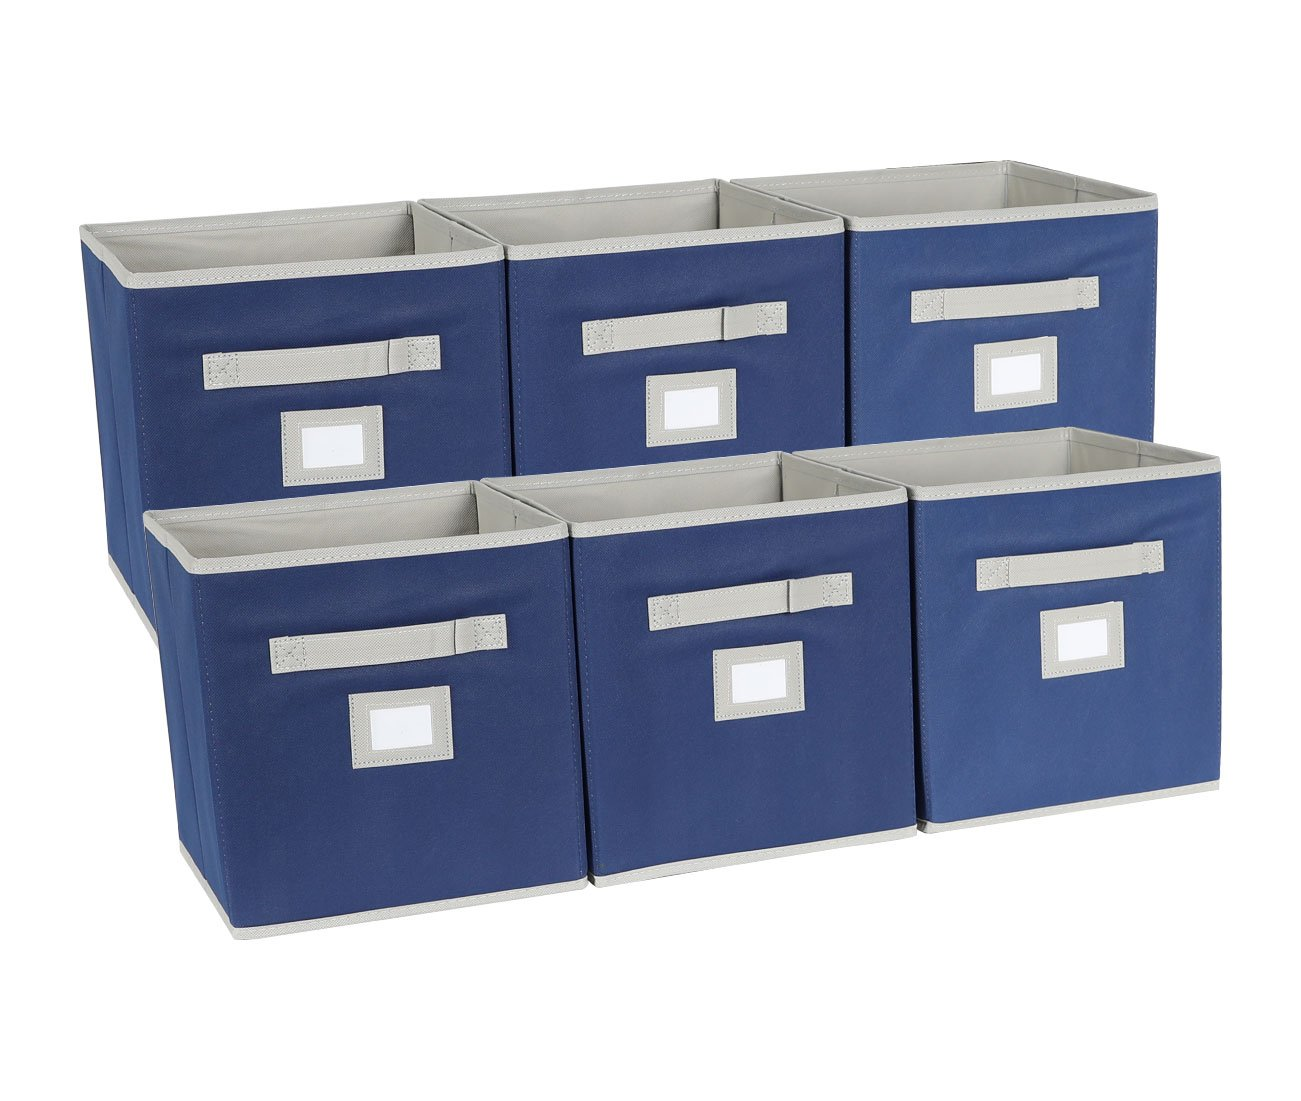 EPG-Life 6 Pack Collapsible Storage Cube Foldable Basket Bins Organization with Label Holder and Dual Fabric Handle, Blue